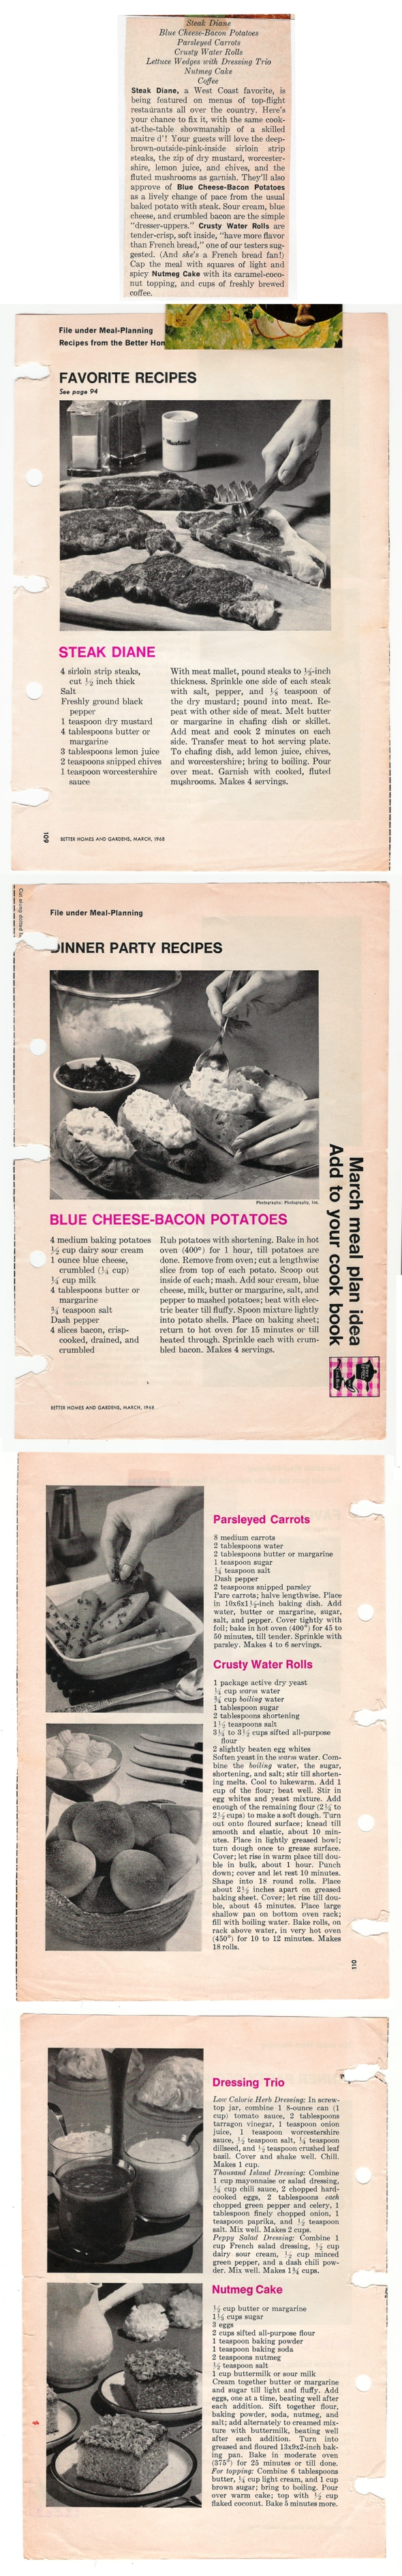 a scan of Mom's steak diane meal - 6 recipes in 1 scan